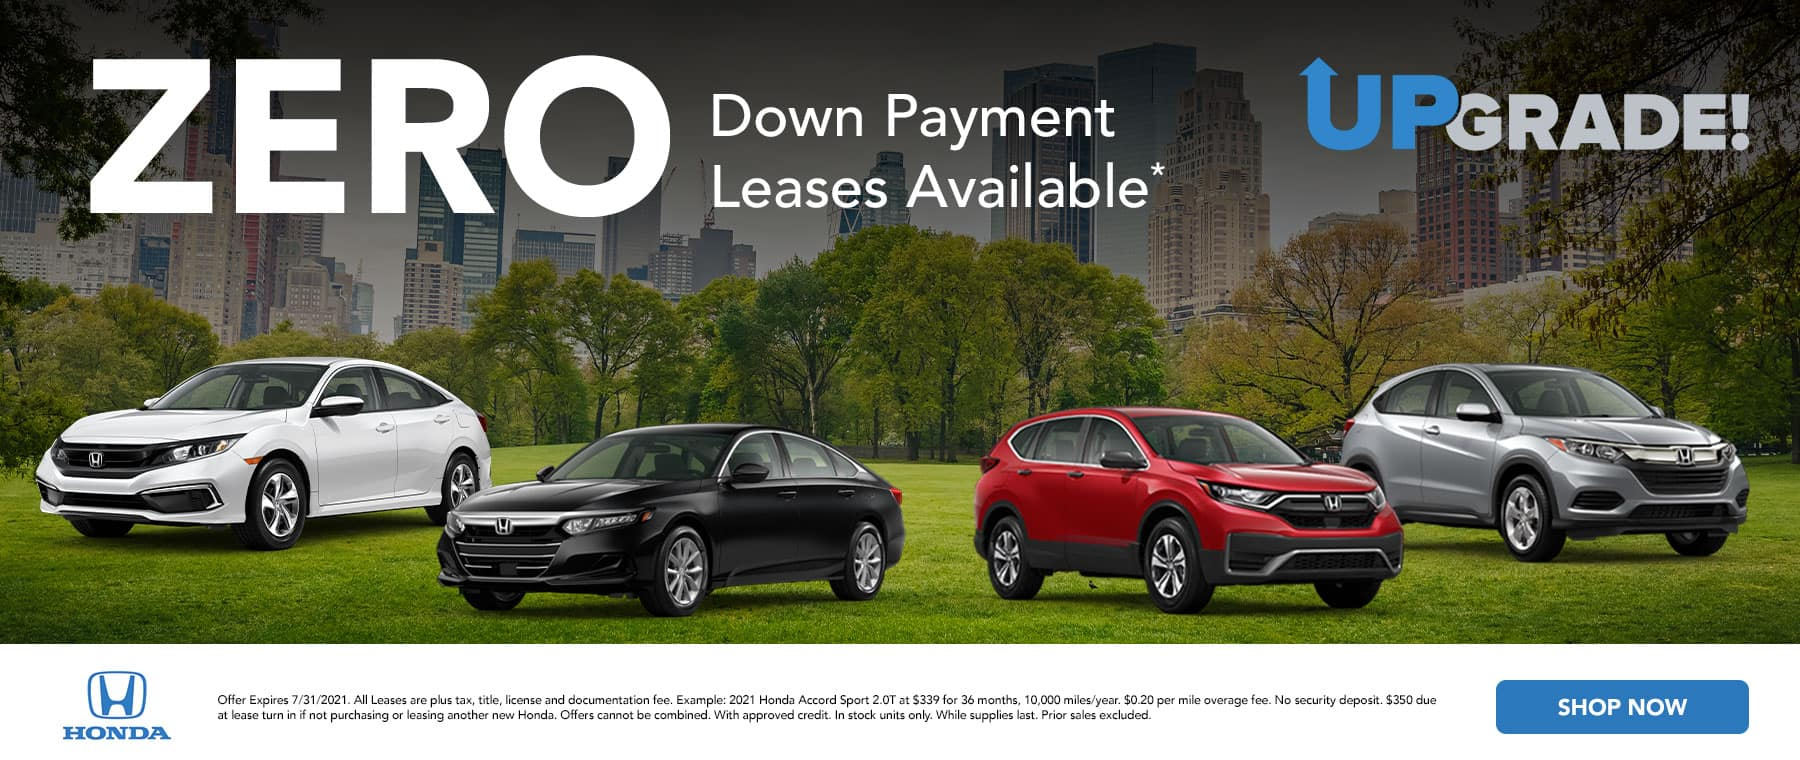 Zero down payment leases